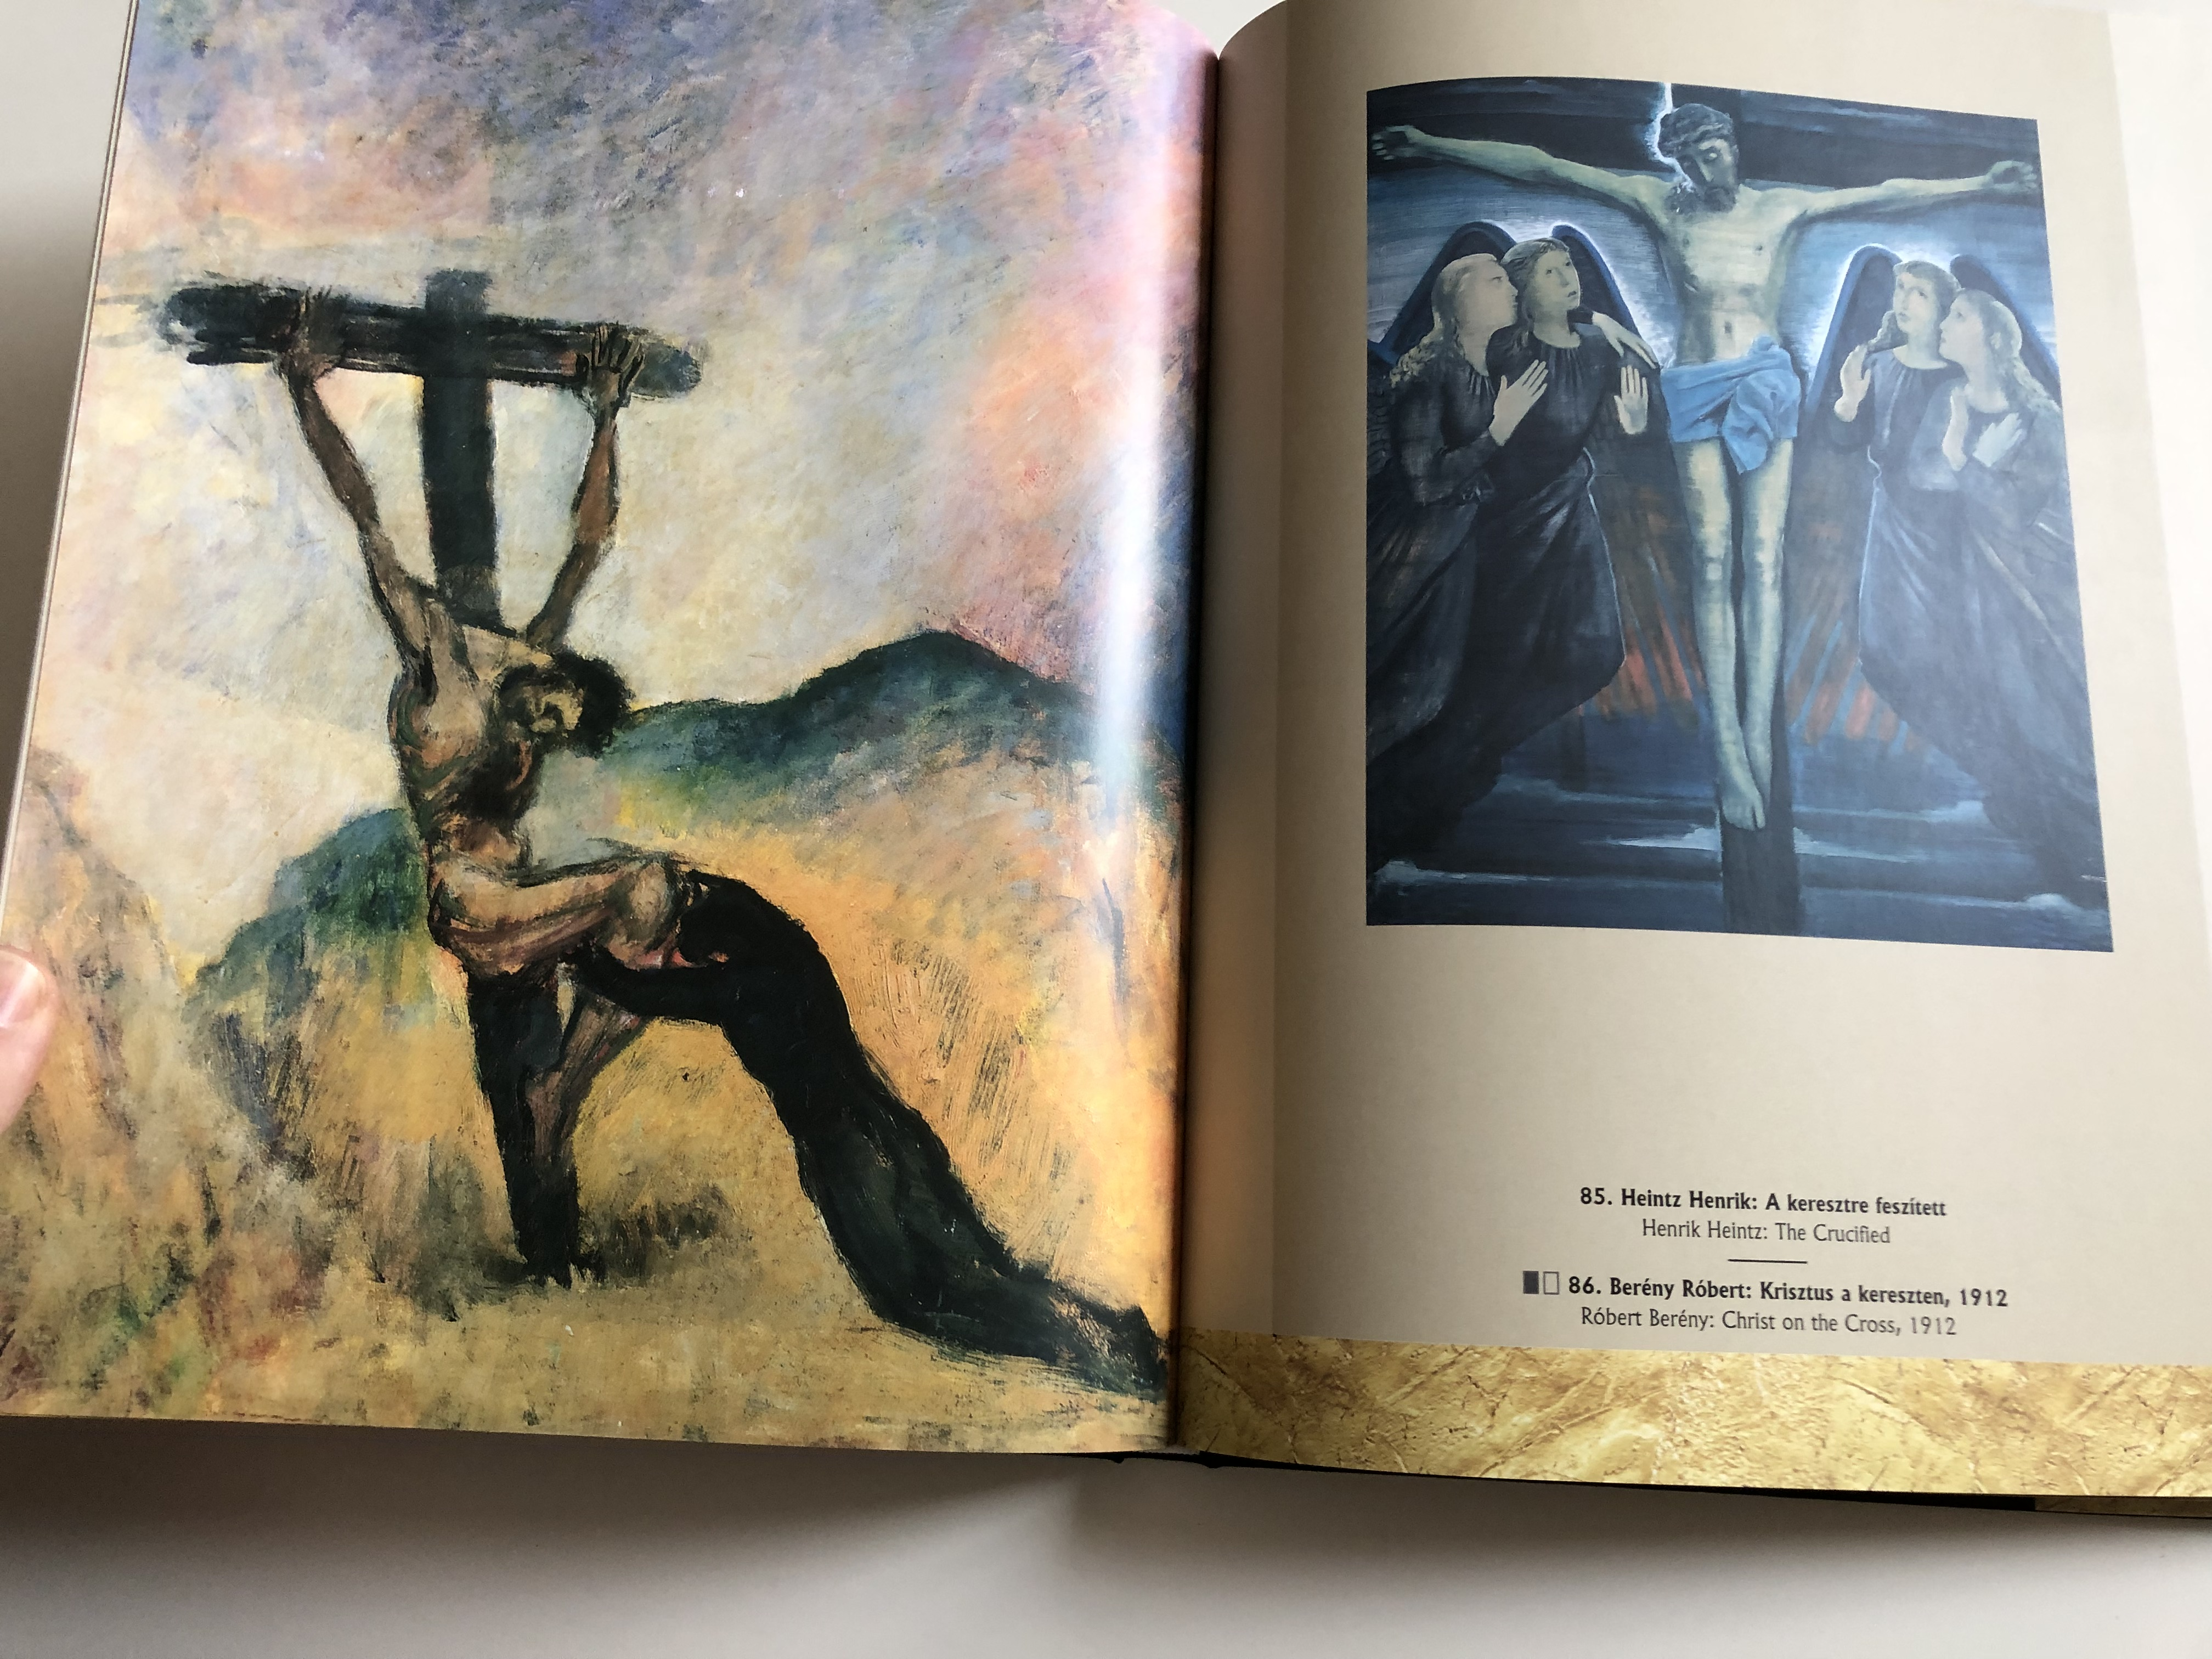 krisztus-br-zol-sok-images-of-christ-v-logat-s-a-magyar-nemzeti-gal-ria-gy-jtem-nyeib-l-selection-from-the-hungarian-national-gallery-s-collections-hardcover-2004-18-.jpg